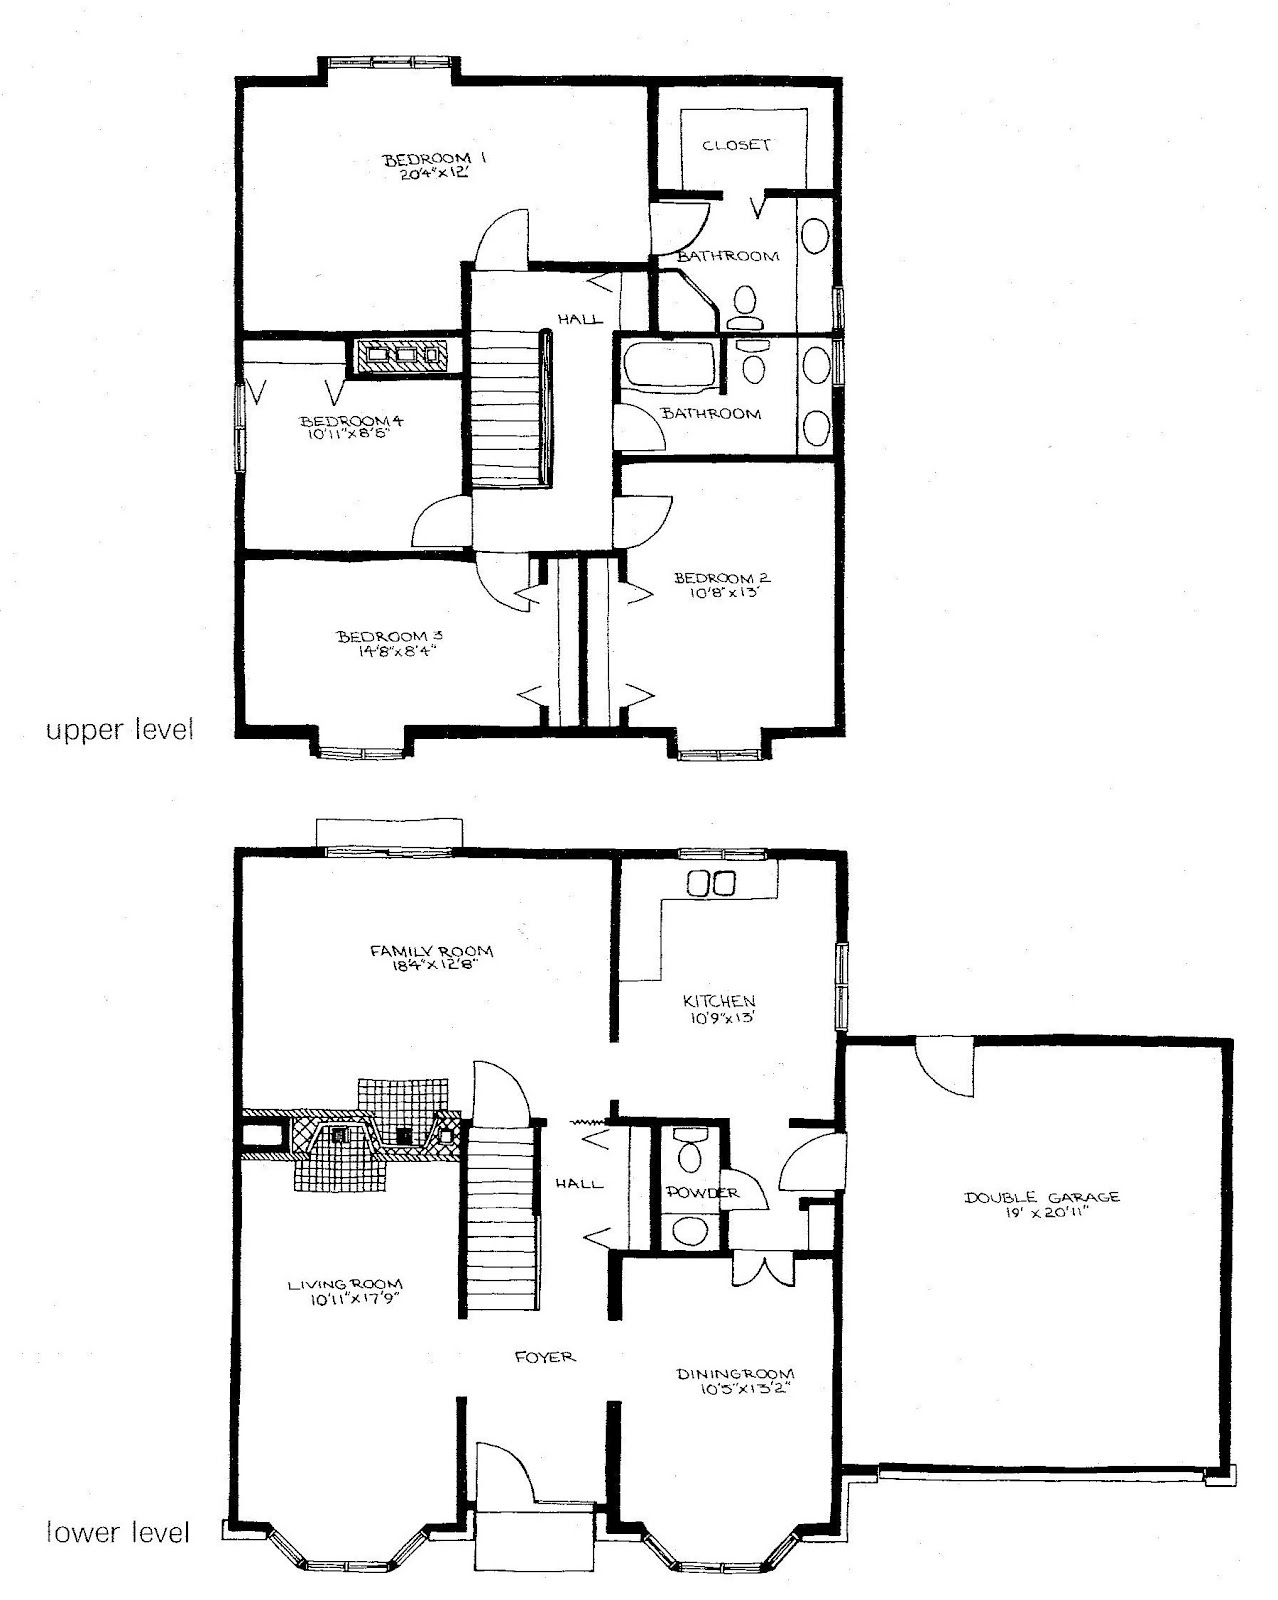 mid century modern and 1970s era ottawa evolution of a plan the while in the past the centre hall plan was wide and shallow by the 1970s the addition of a large family room made many of these plans quite deep